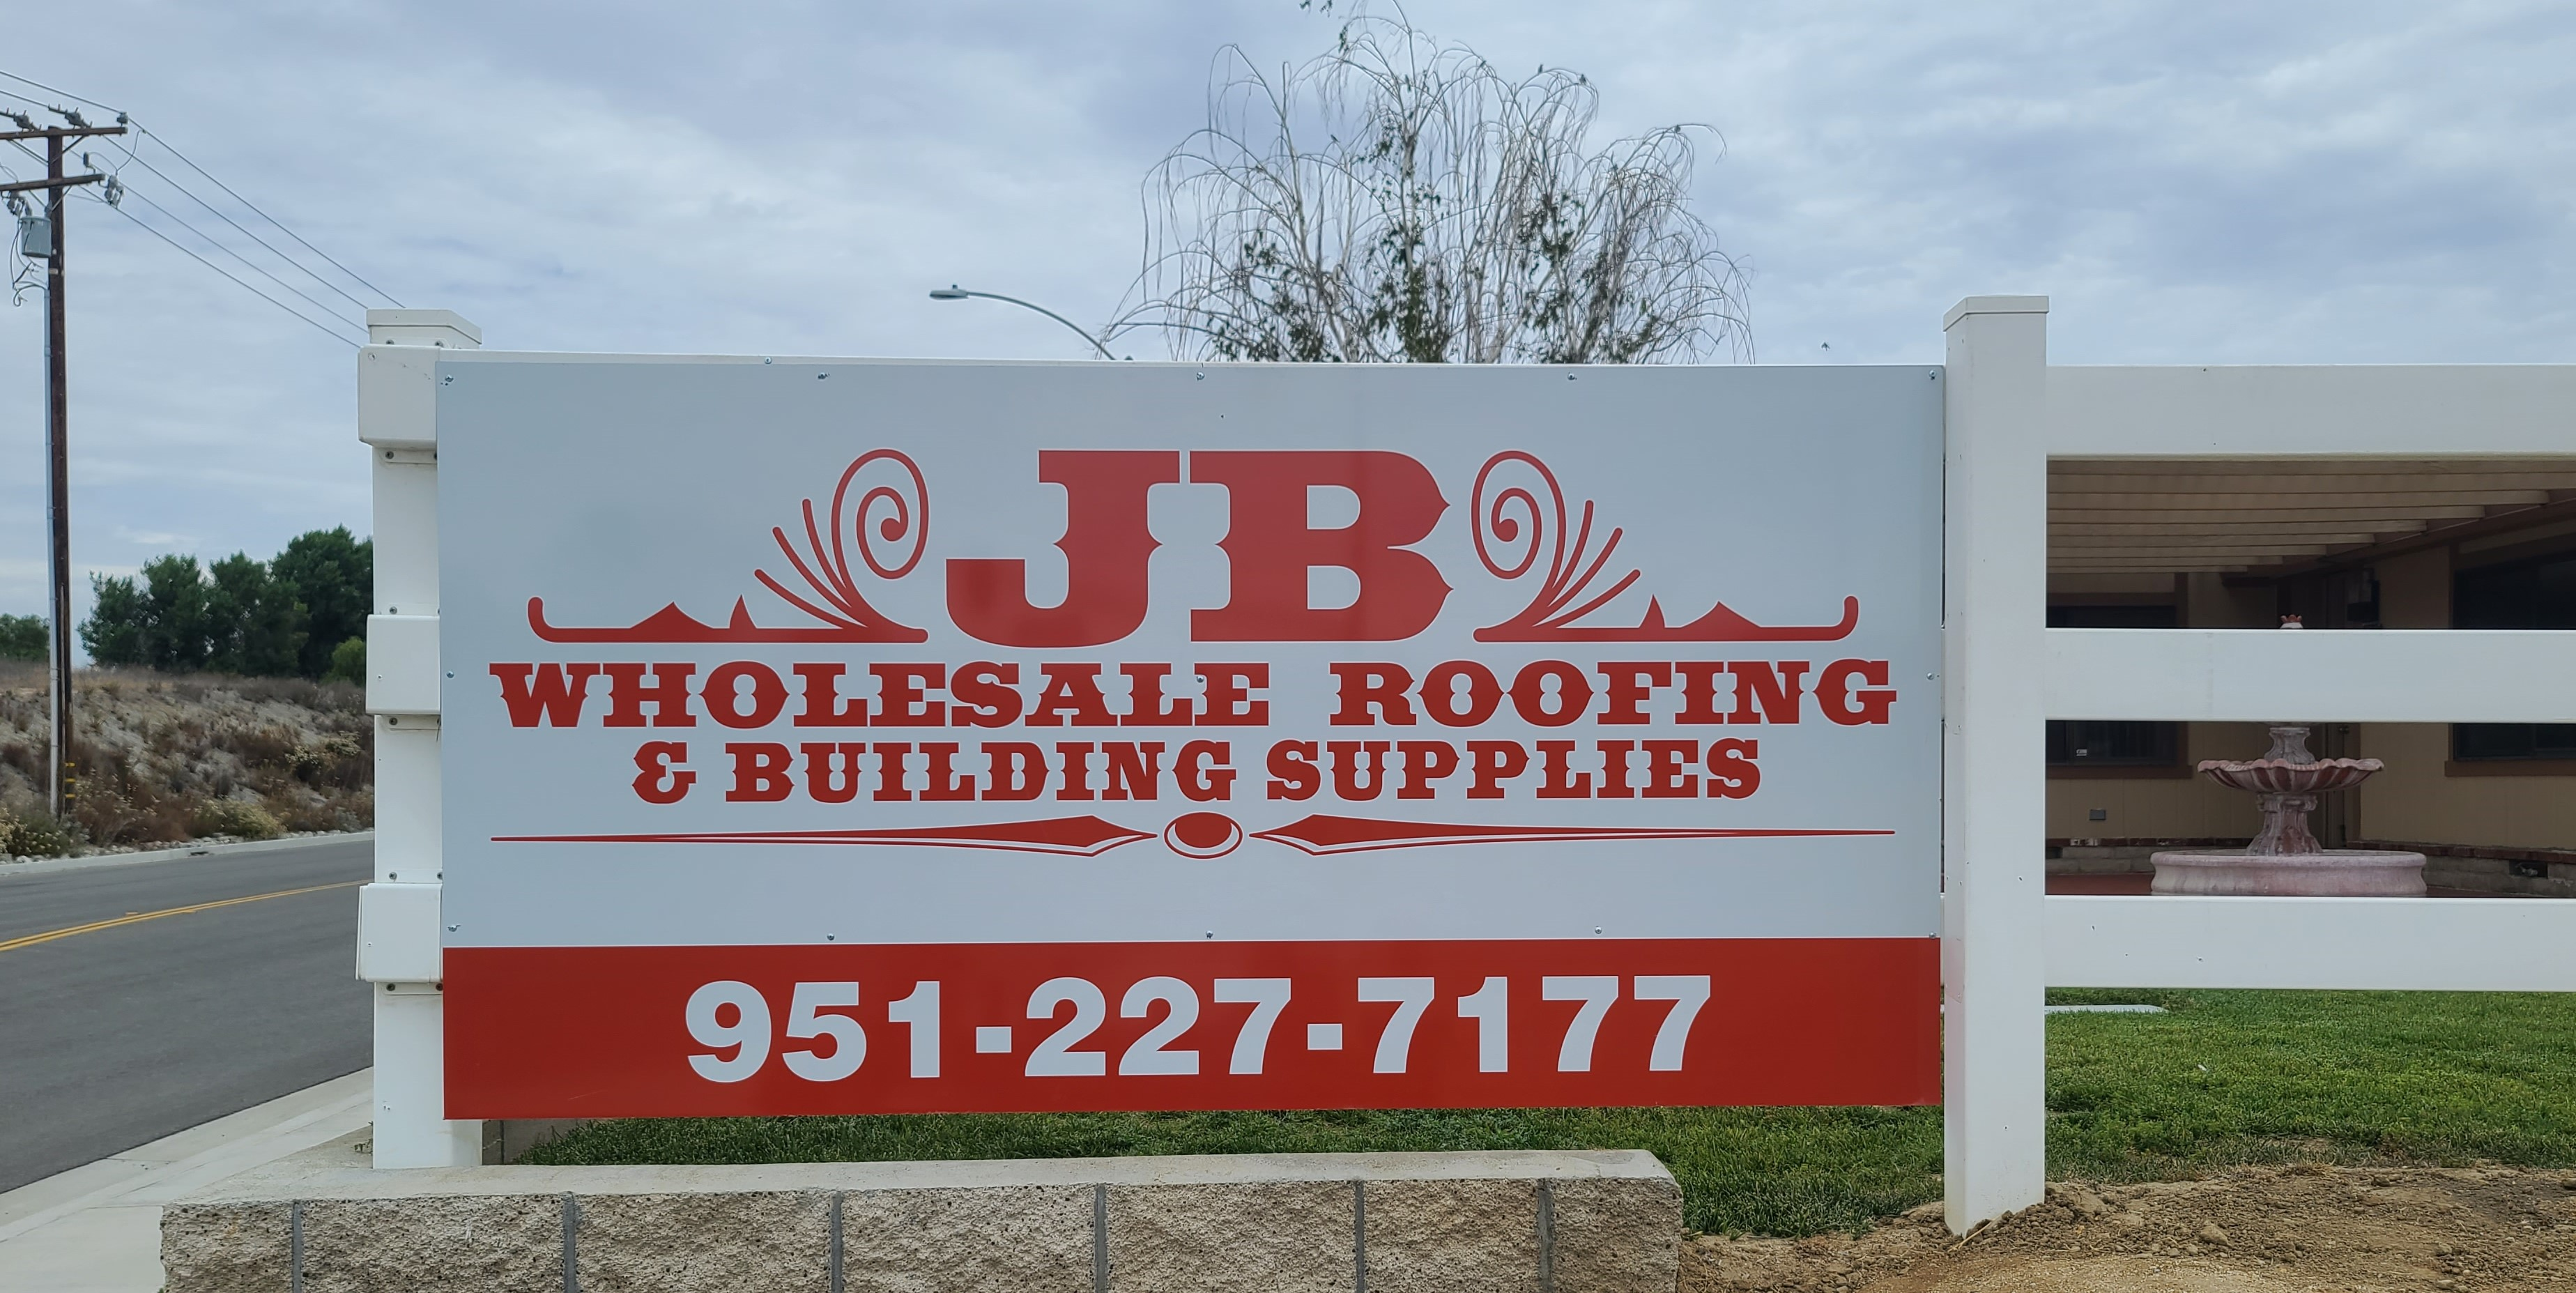 With this metal panel fence sign, JB Wholesale Roofing and Building Supplies' Murietta location will give their brand better visibility.